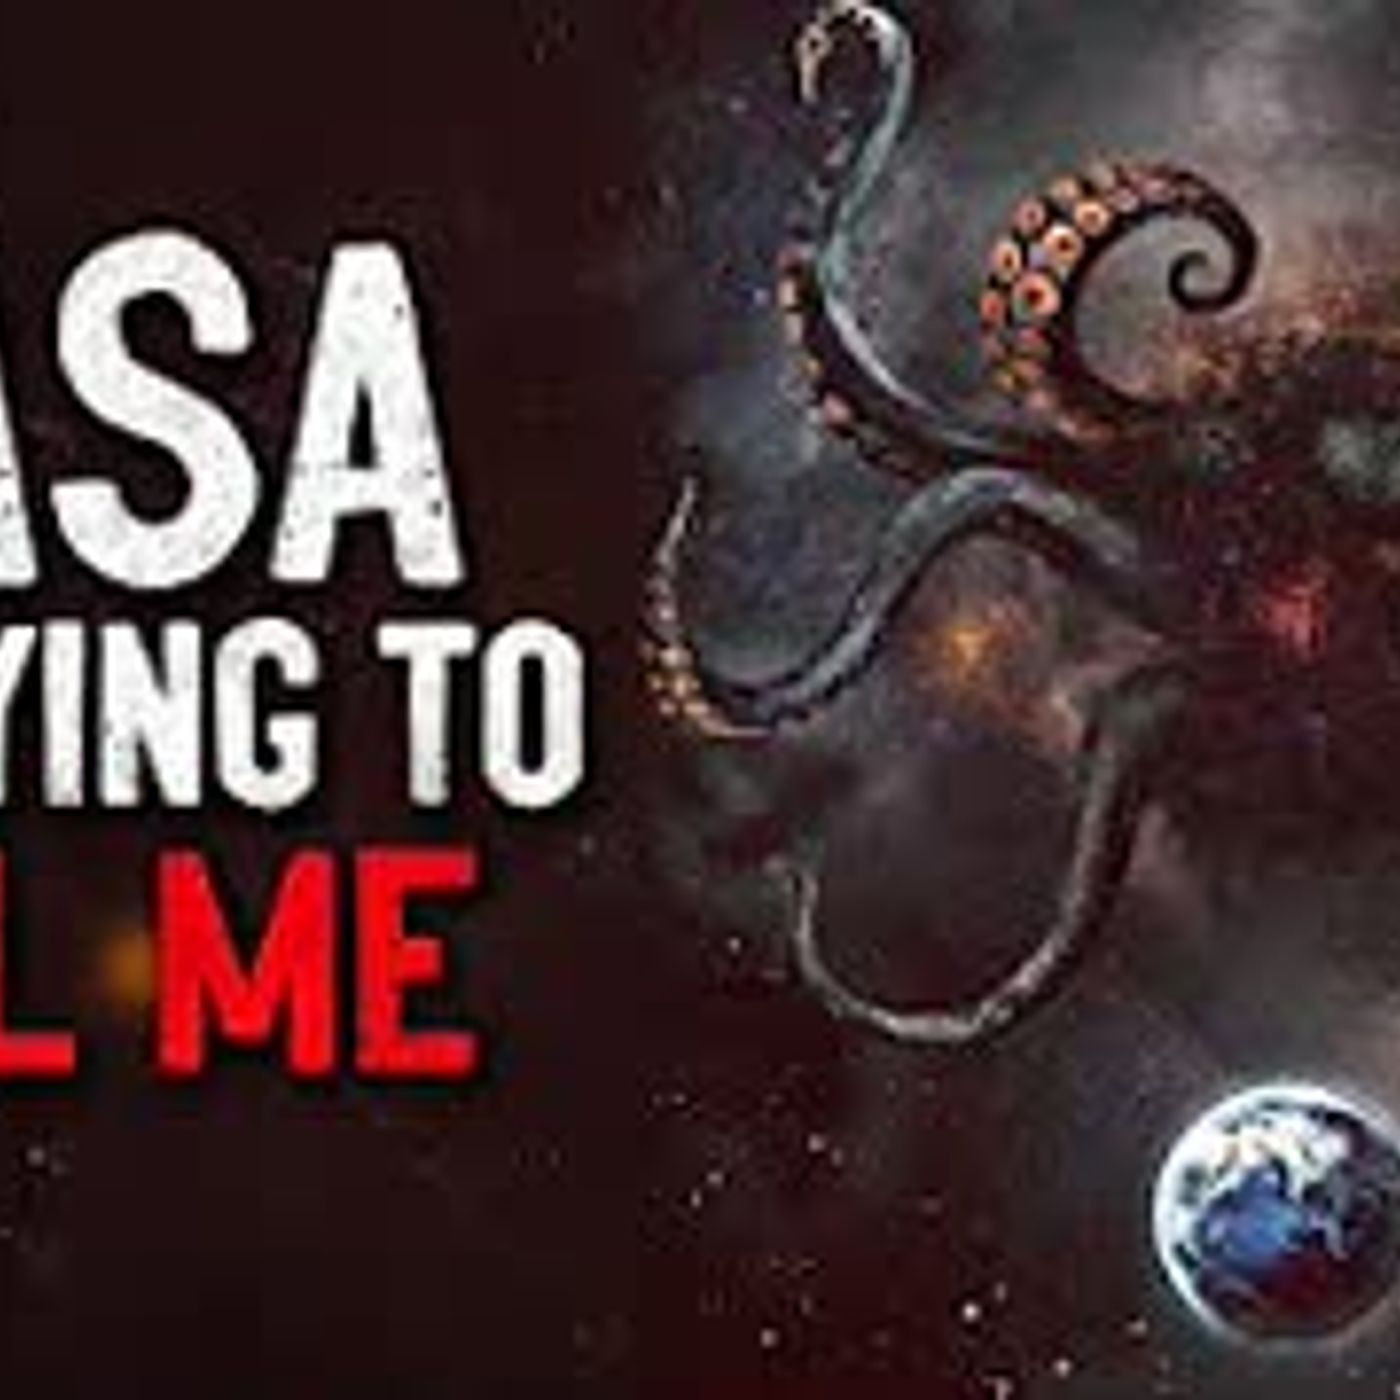 """NASA Is Trying To Kill Me"" Creepypasta"